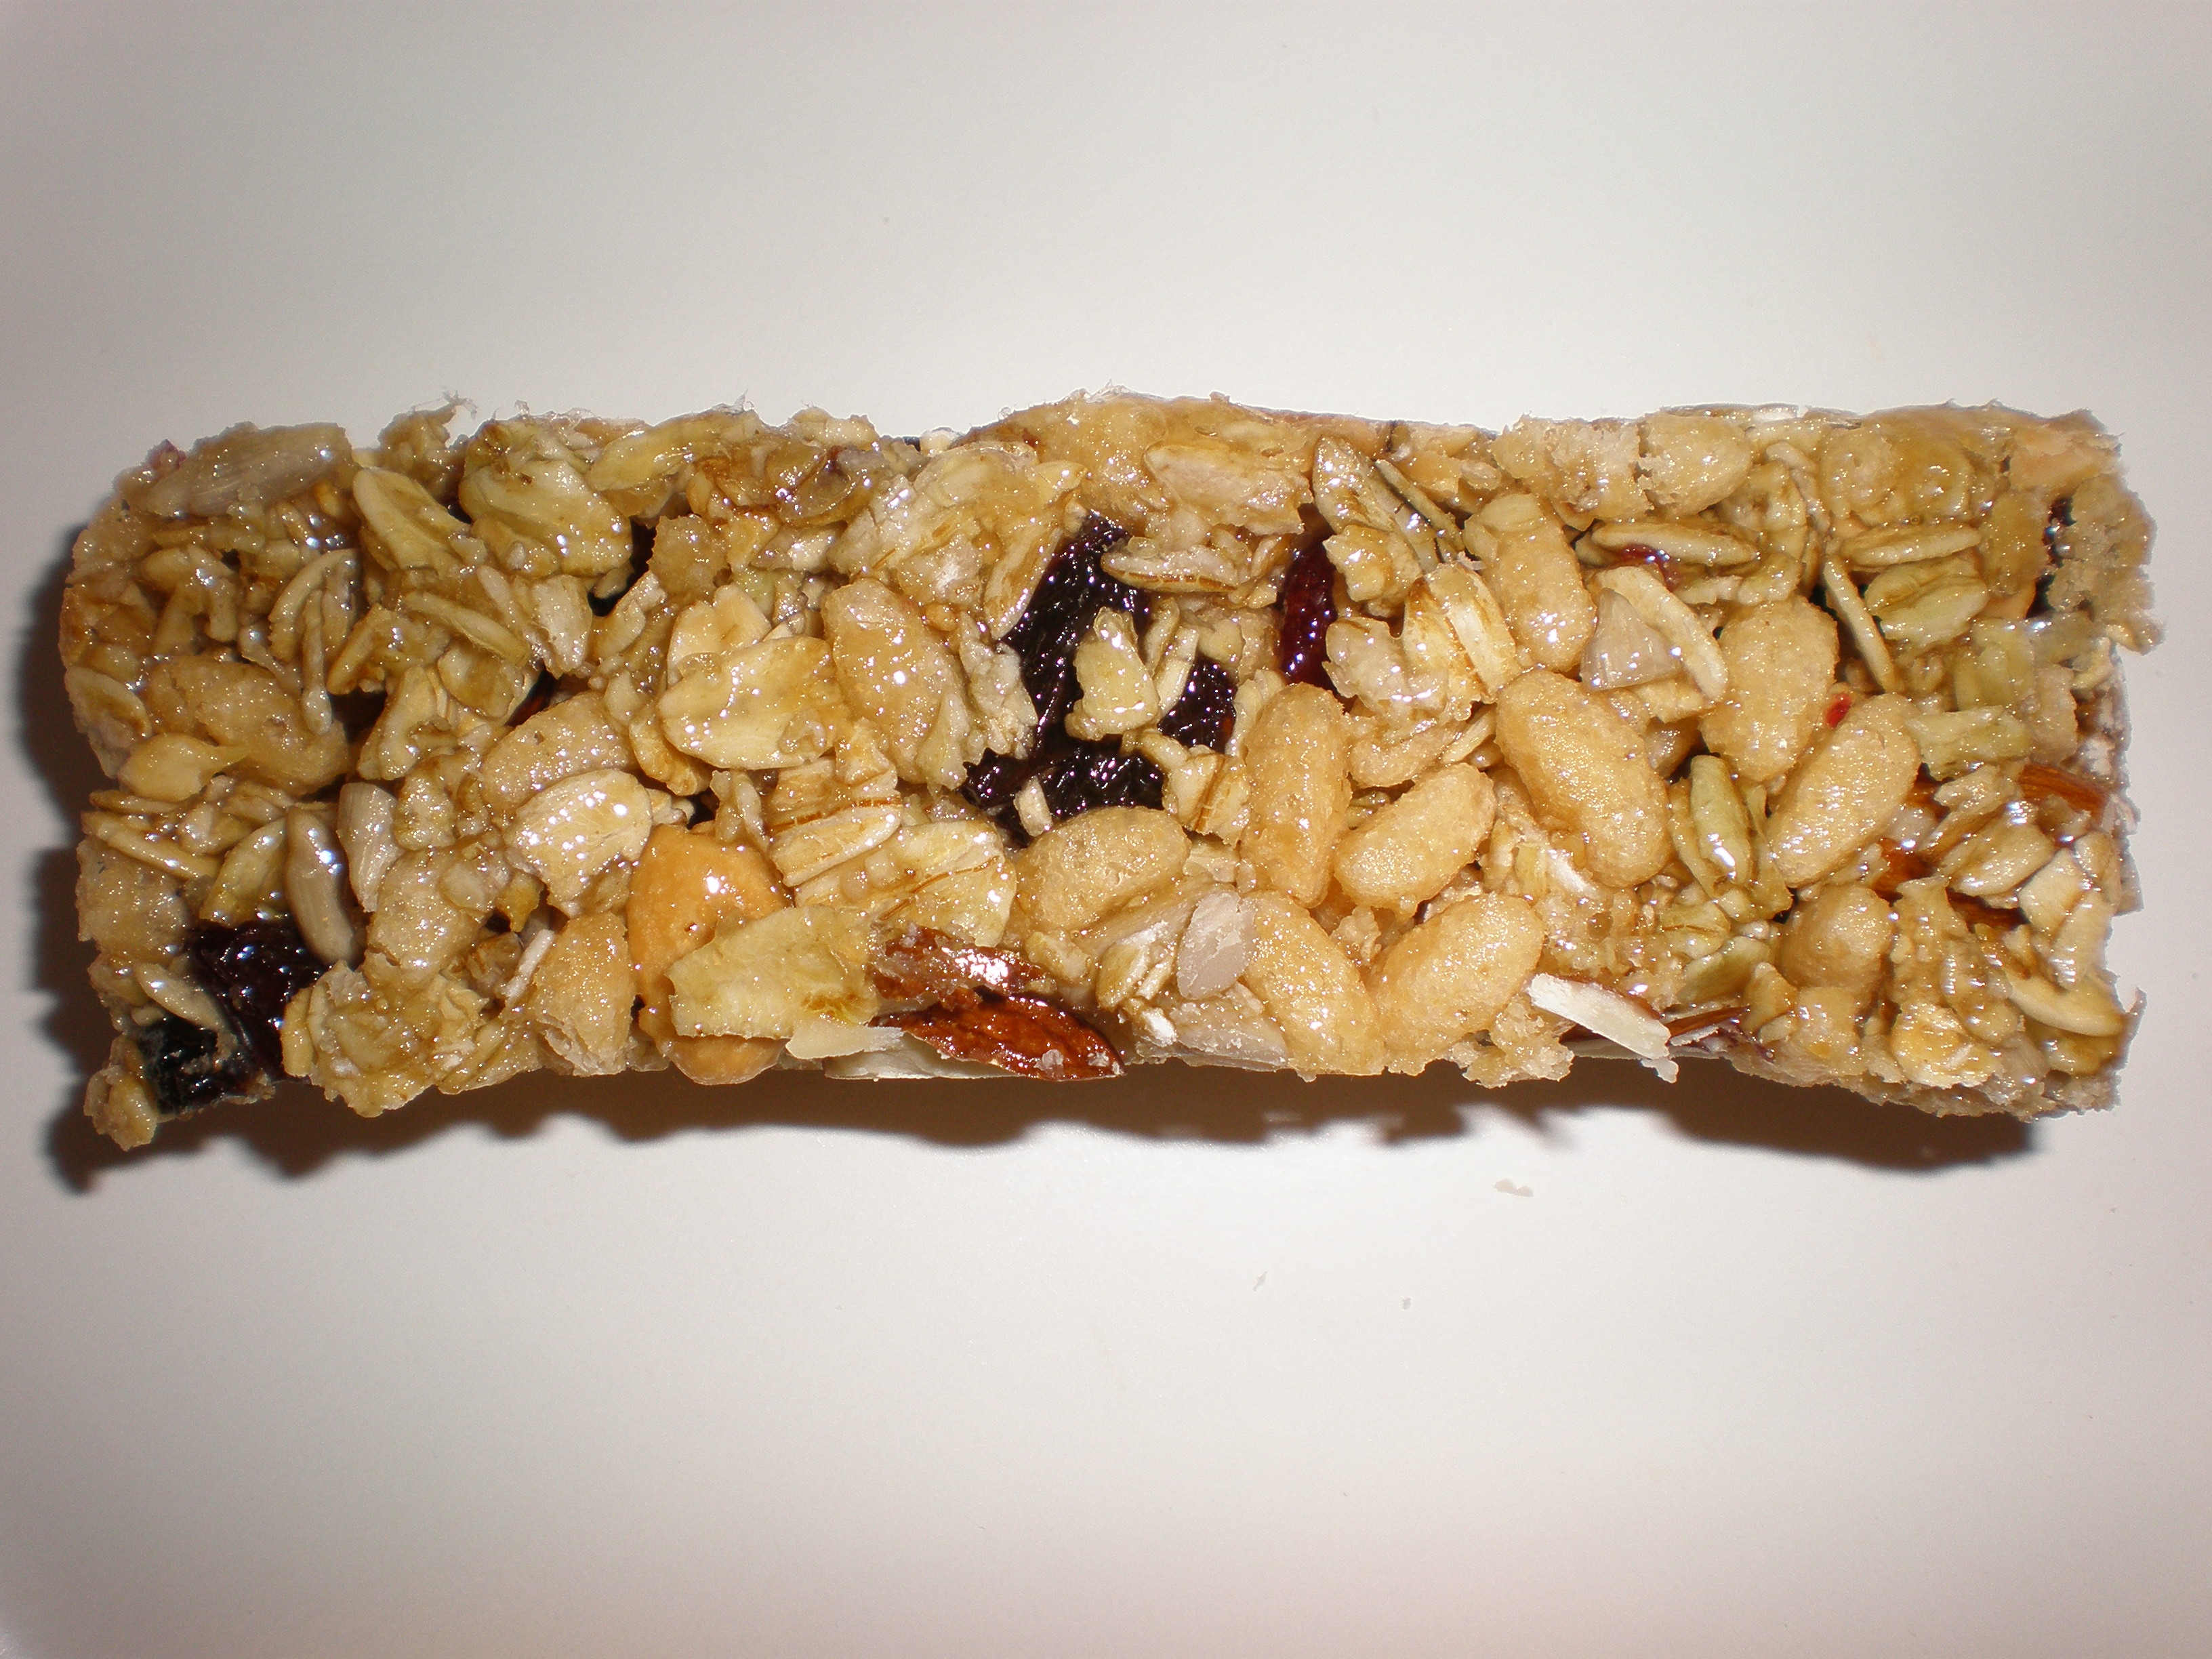 Peanut and Walnut Energy Bars